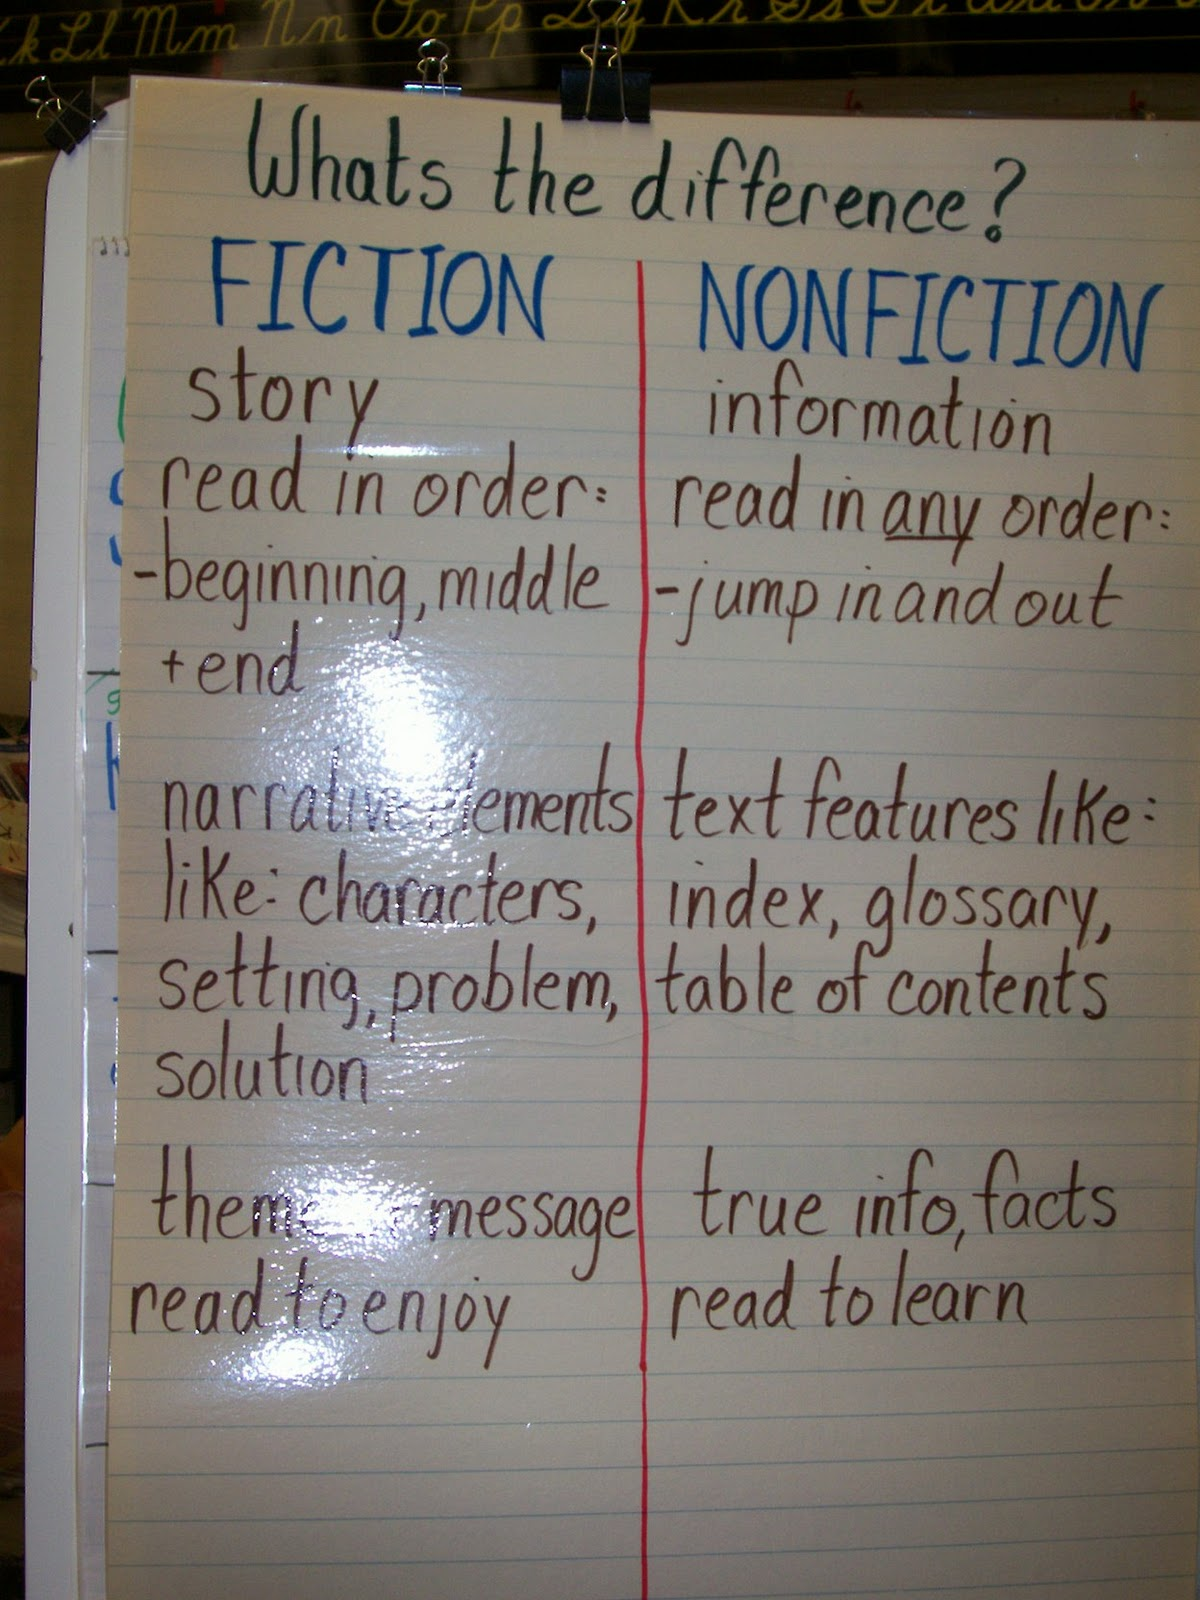 Fiction vs nonfiction whats the difference